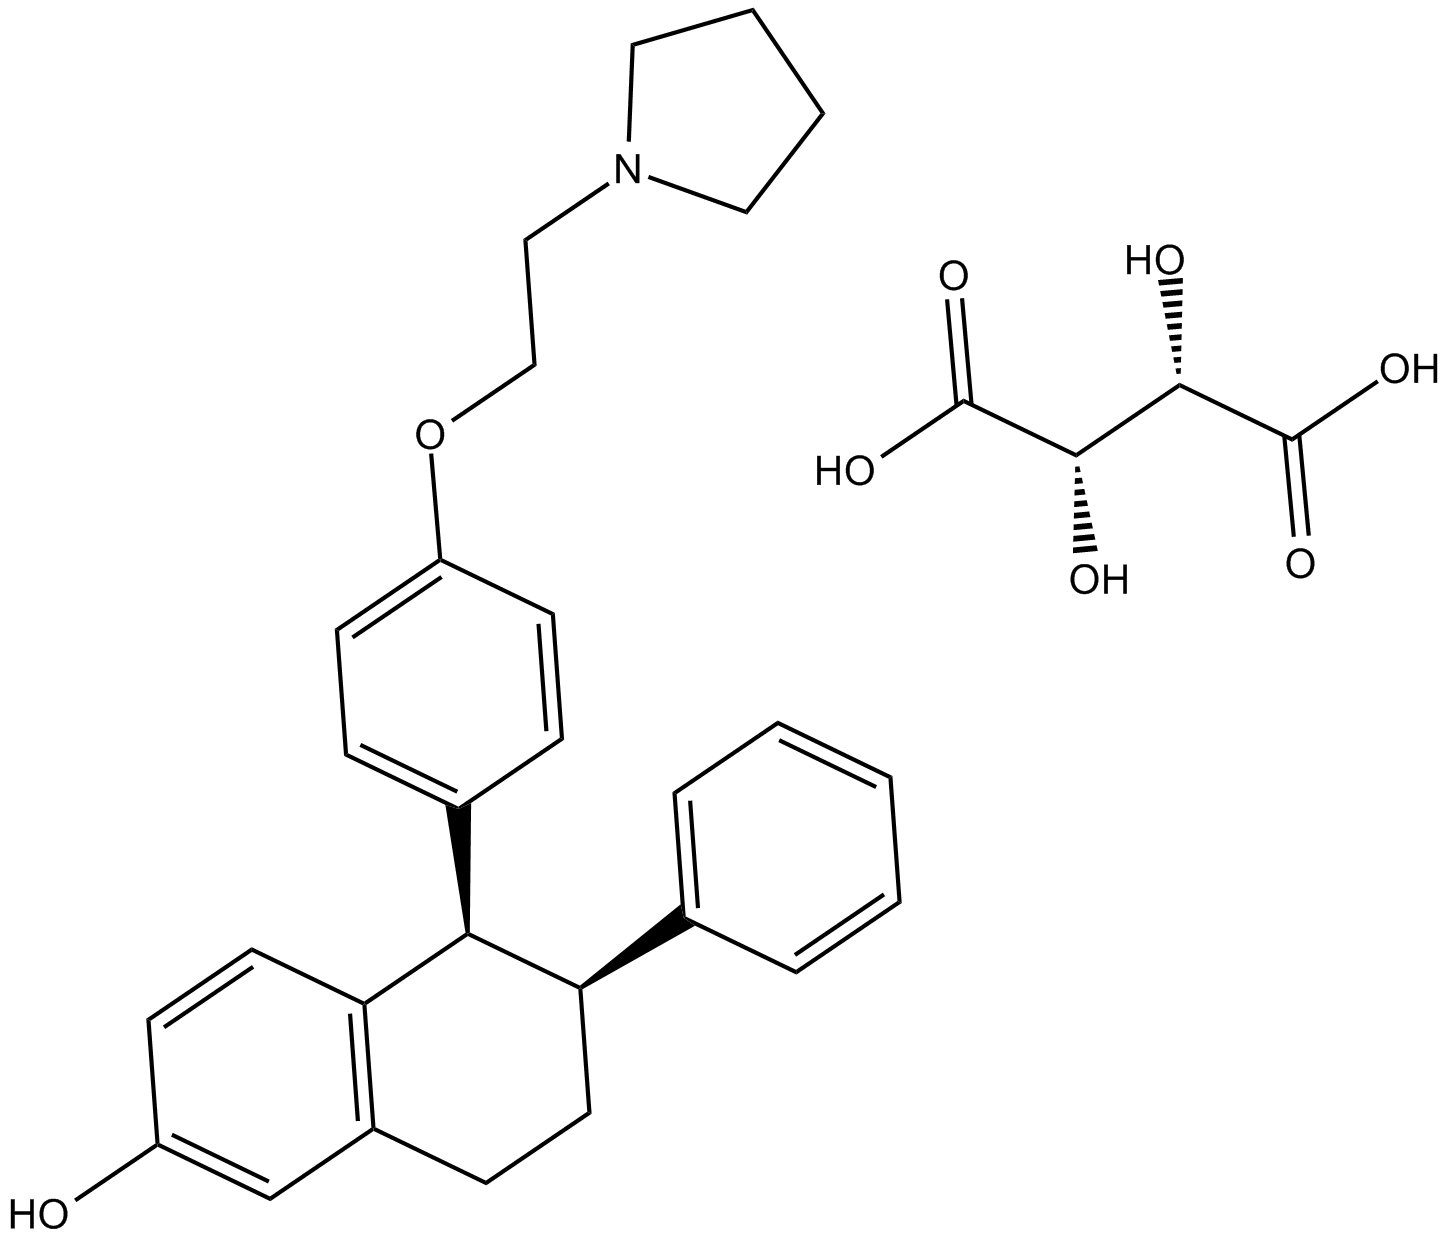 Lasofoxifene (tartrate)